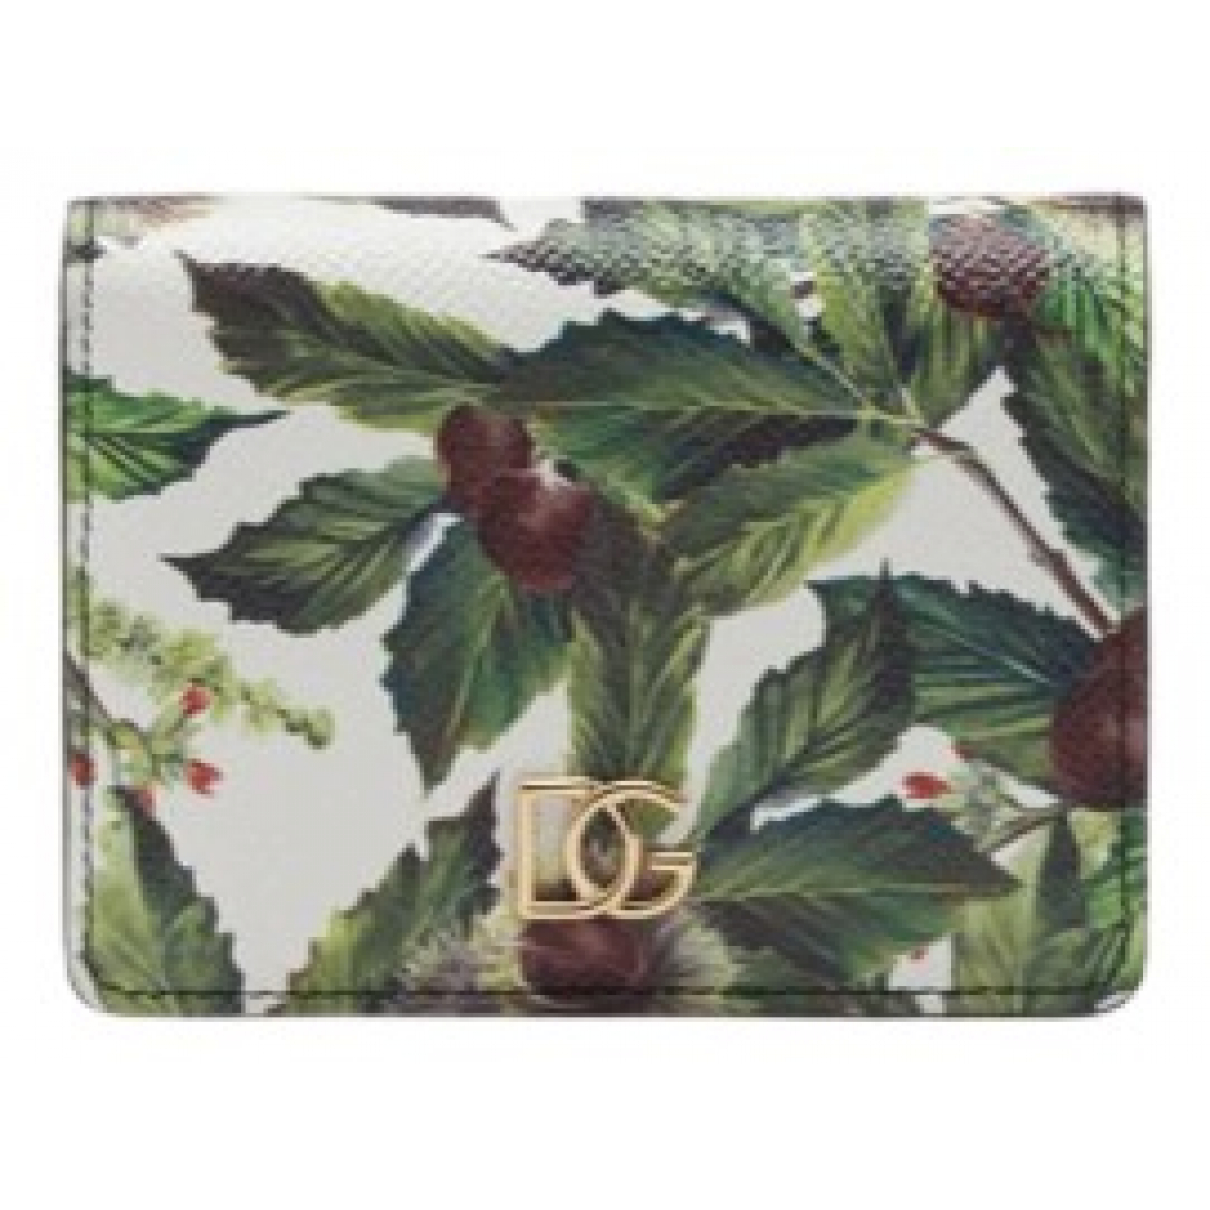 Dolce & Gabbana N Green Leather Purses, wallet & cases for Women N